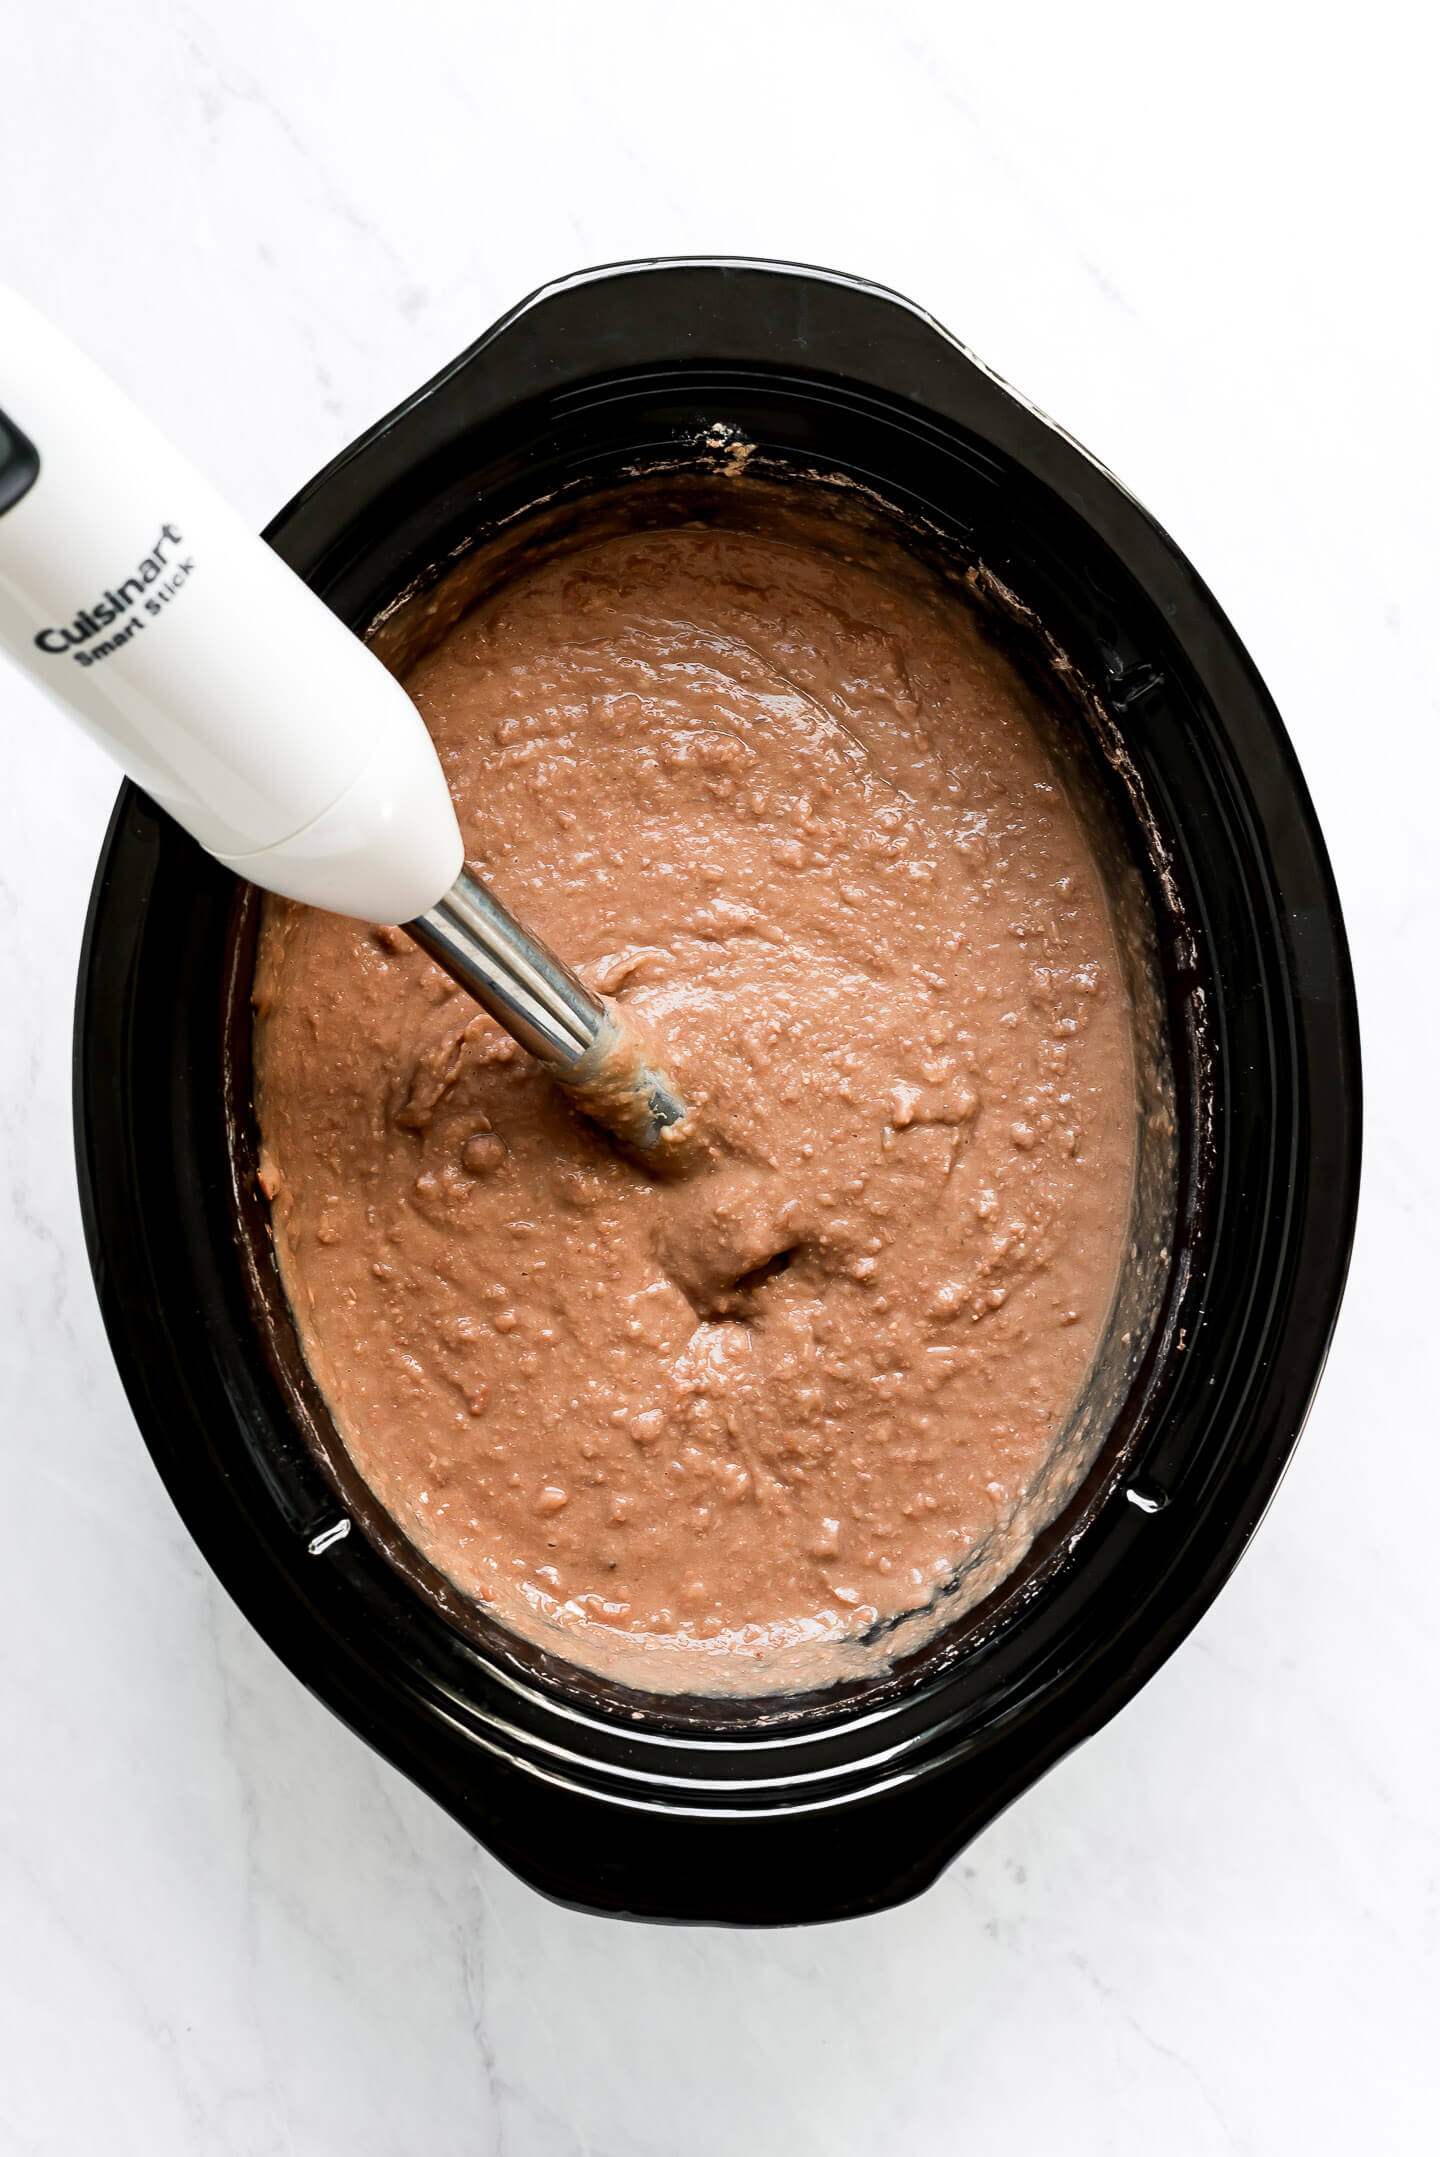 A slow cooker full of mashed pinto beans with a hand blender in it.